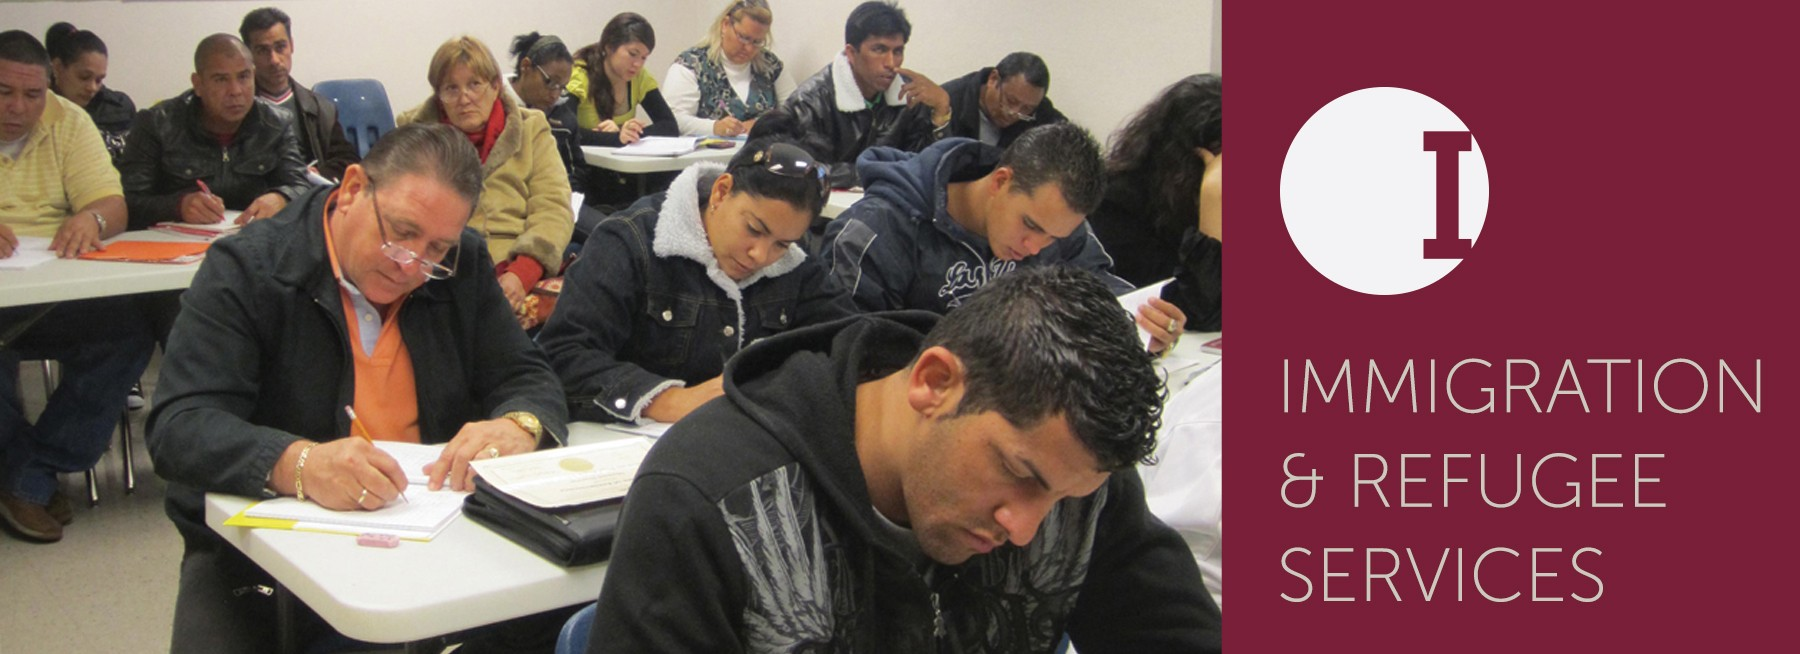 slider-immigration